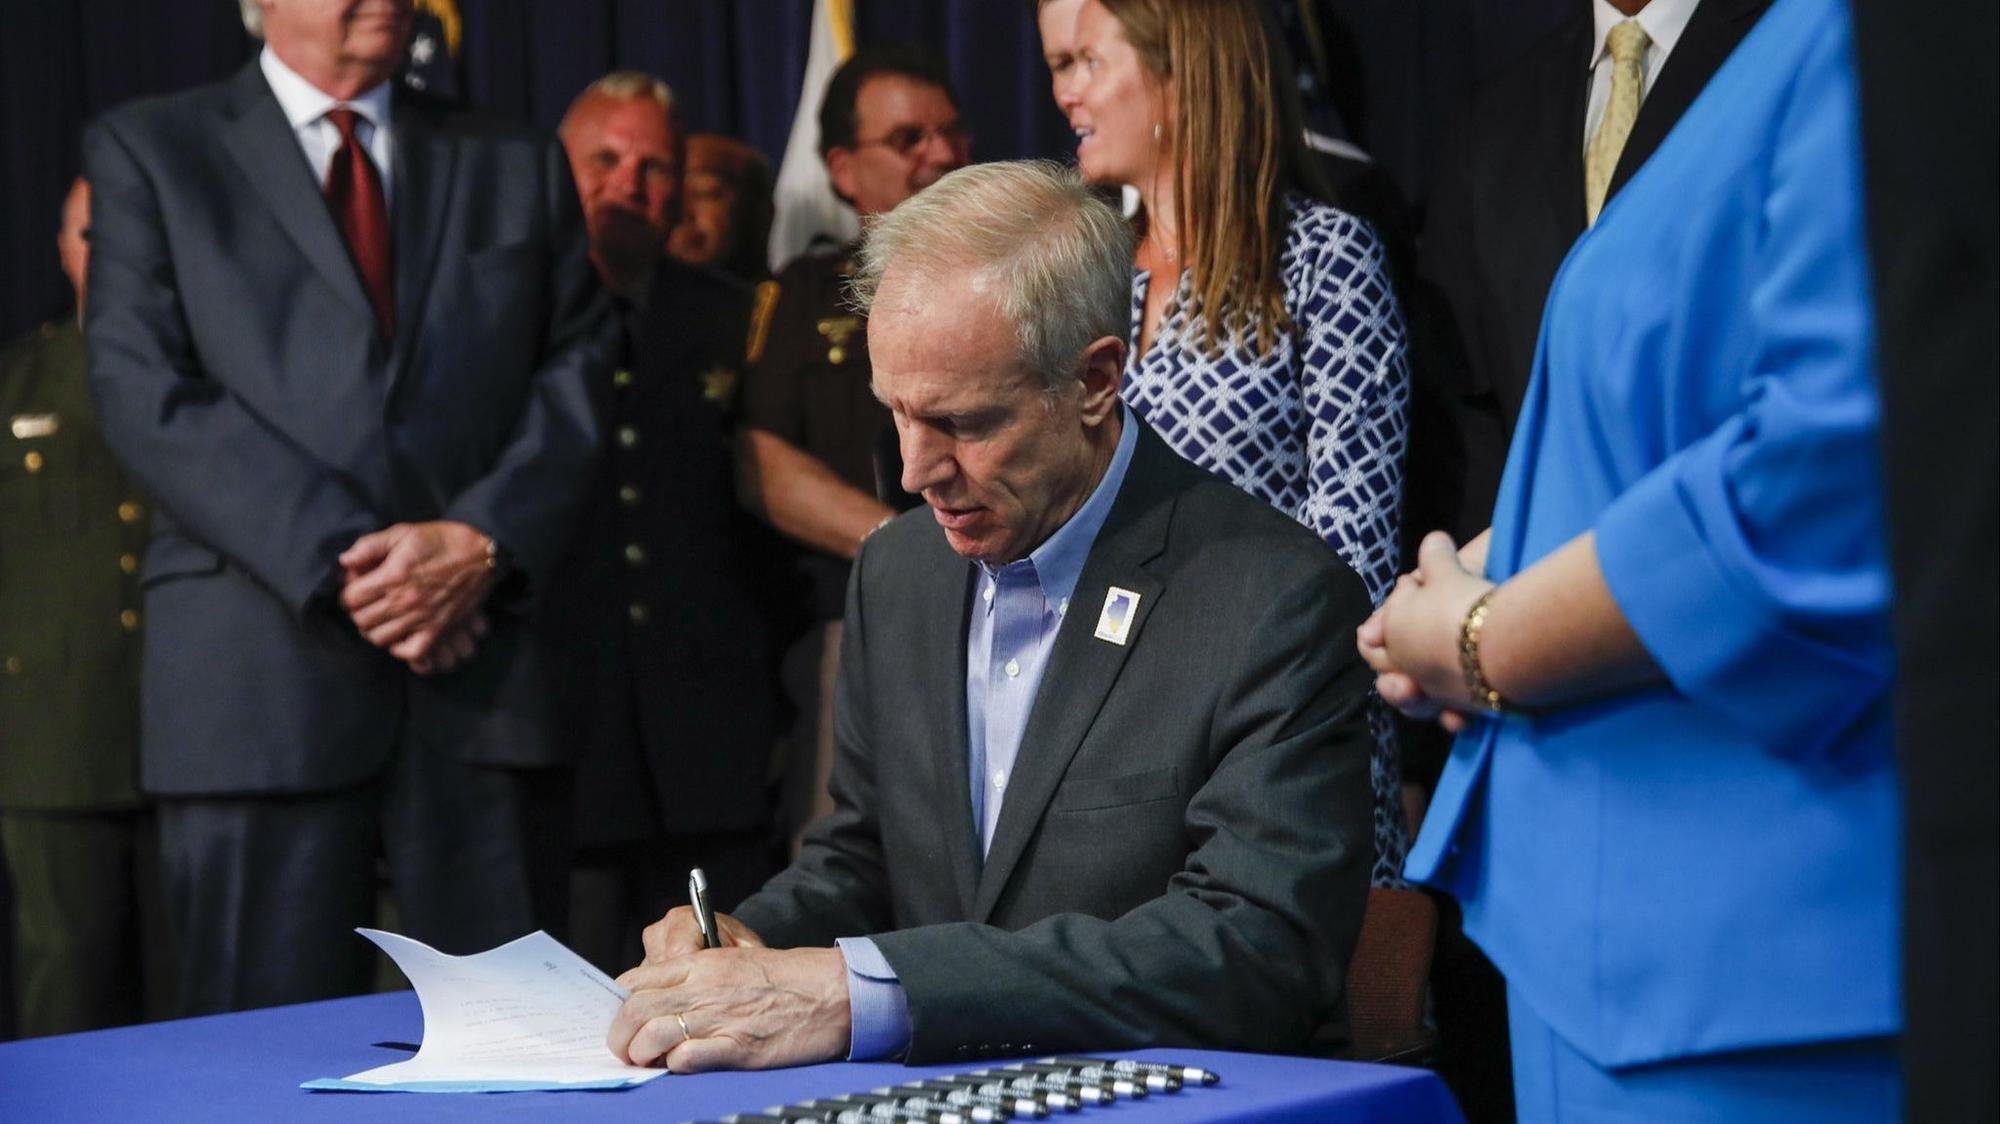 Rauner set to sign medical marijuana expansion bill allowing drug as painkiller alternative